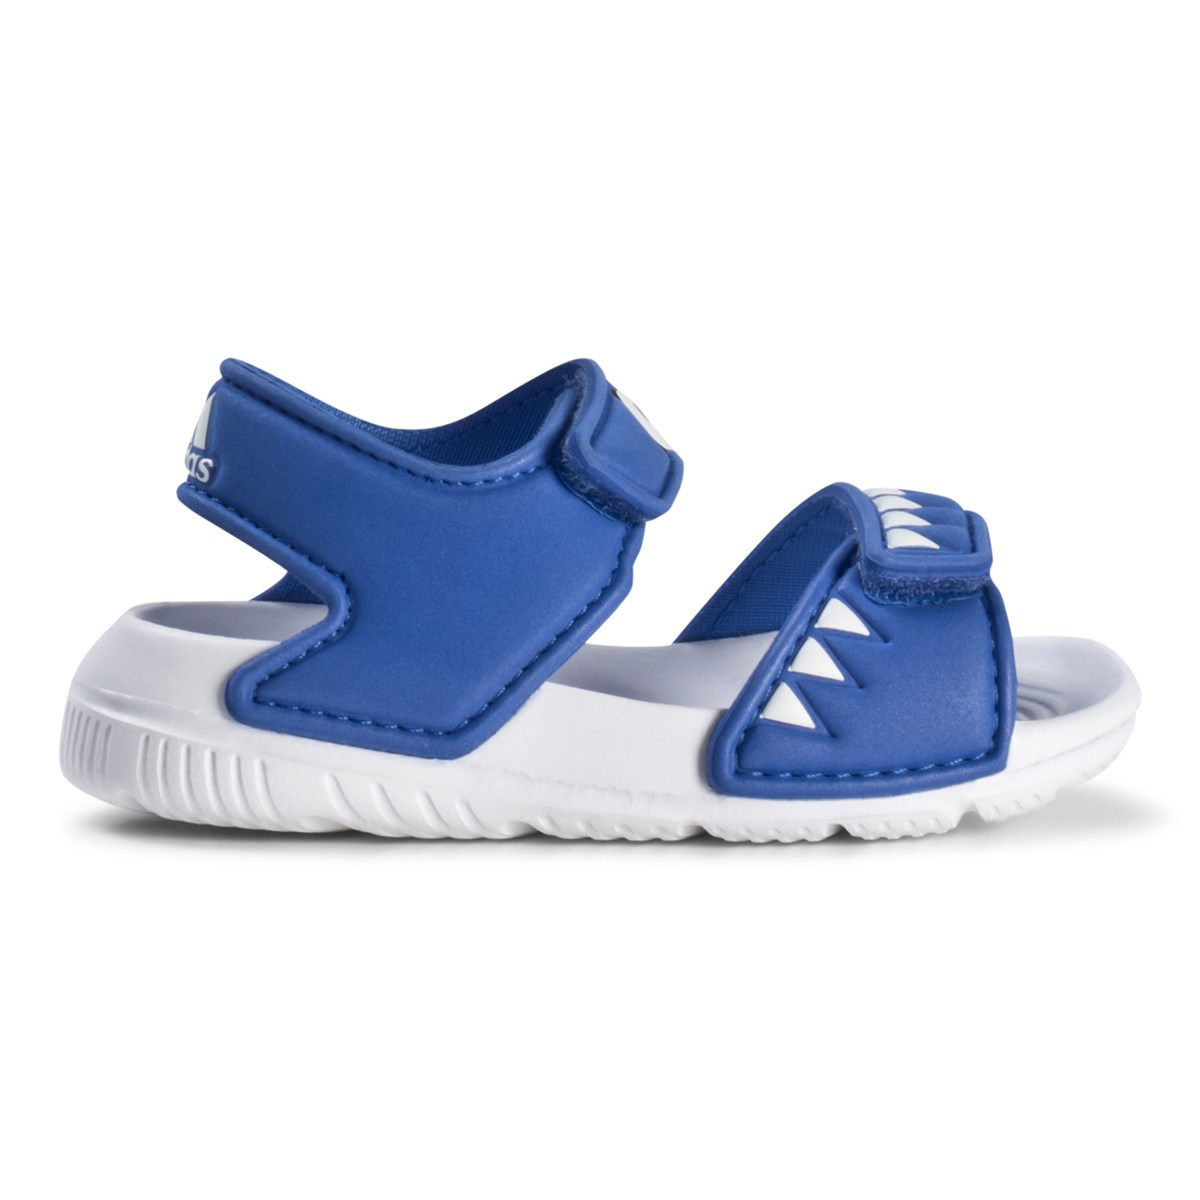 a30dced1b23c adidas Performance - Blue Monster Alta Swim Infants Sandals - Babyshop.com